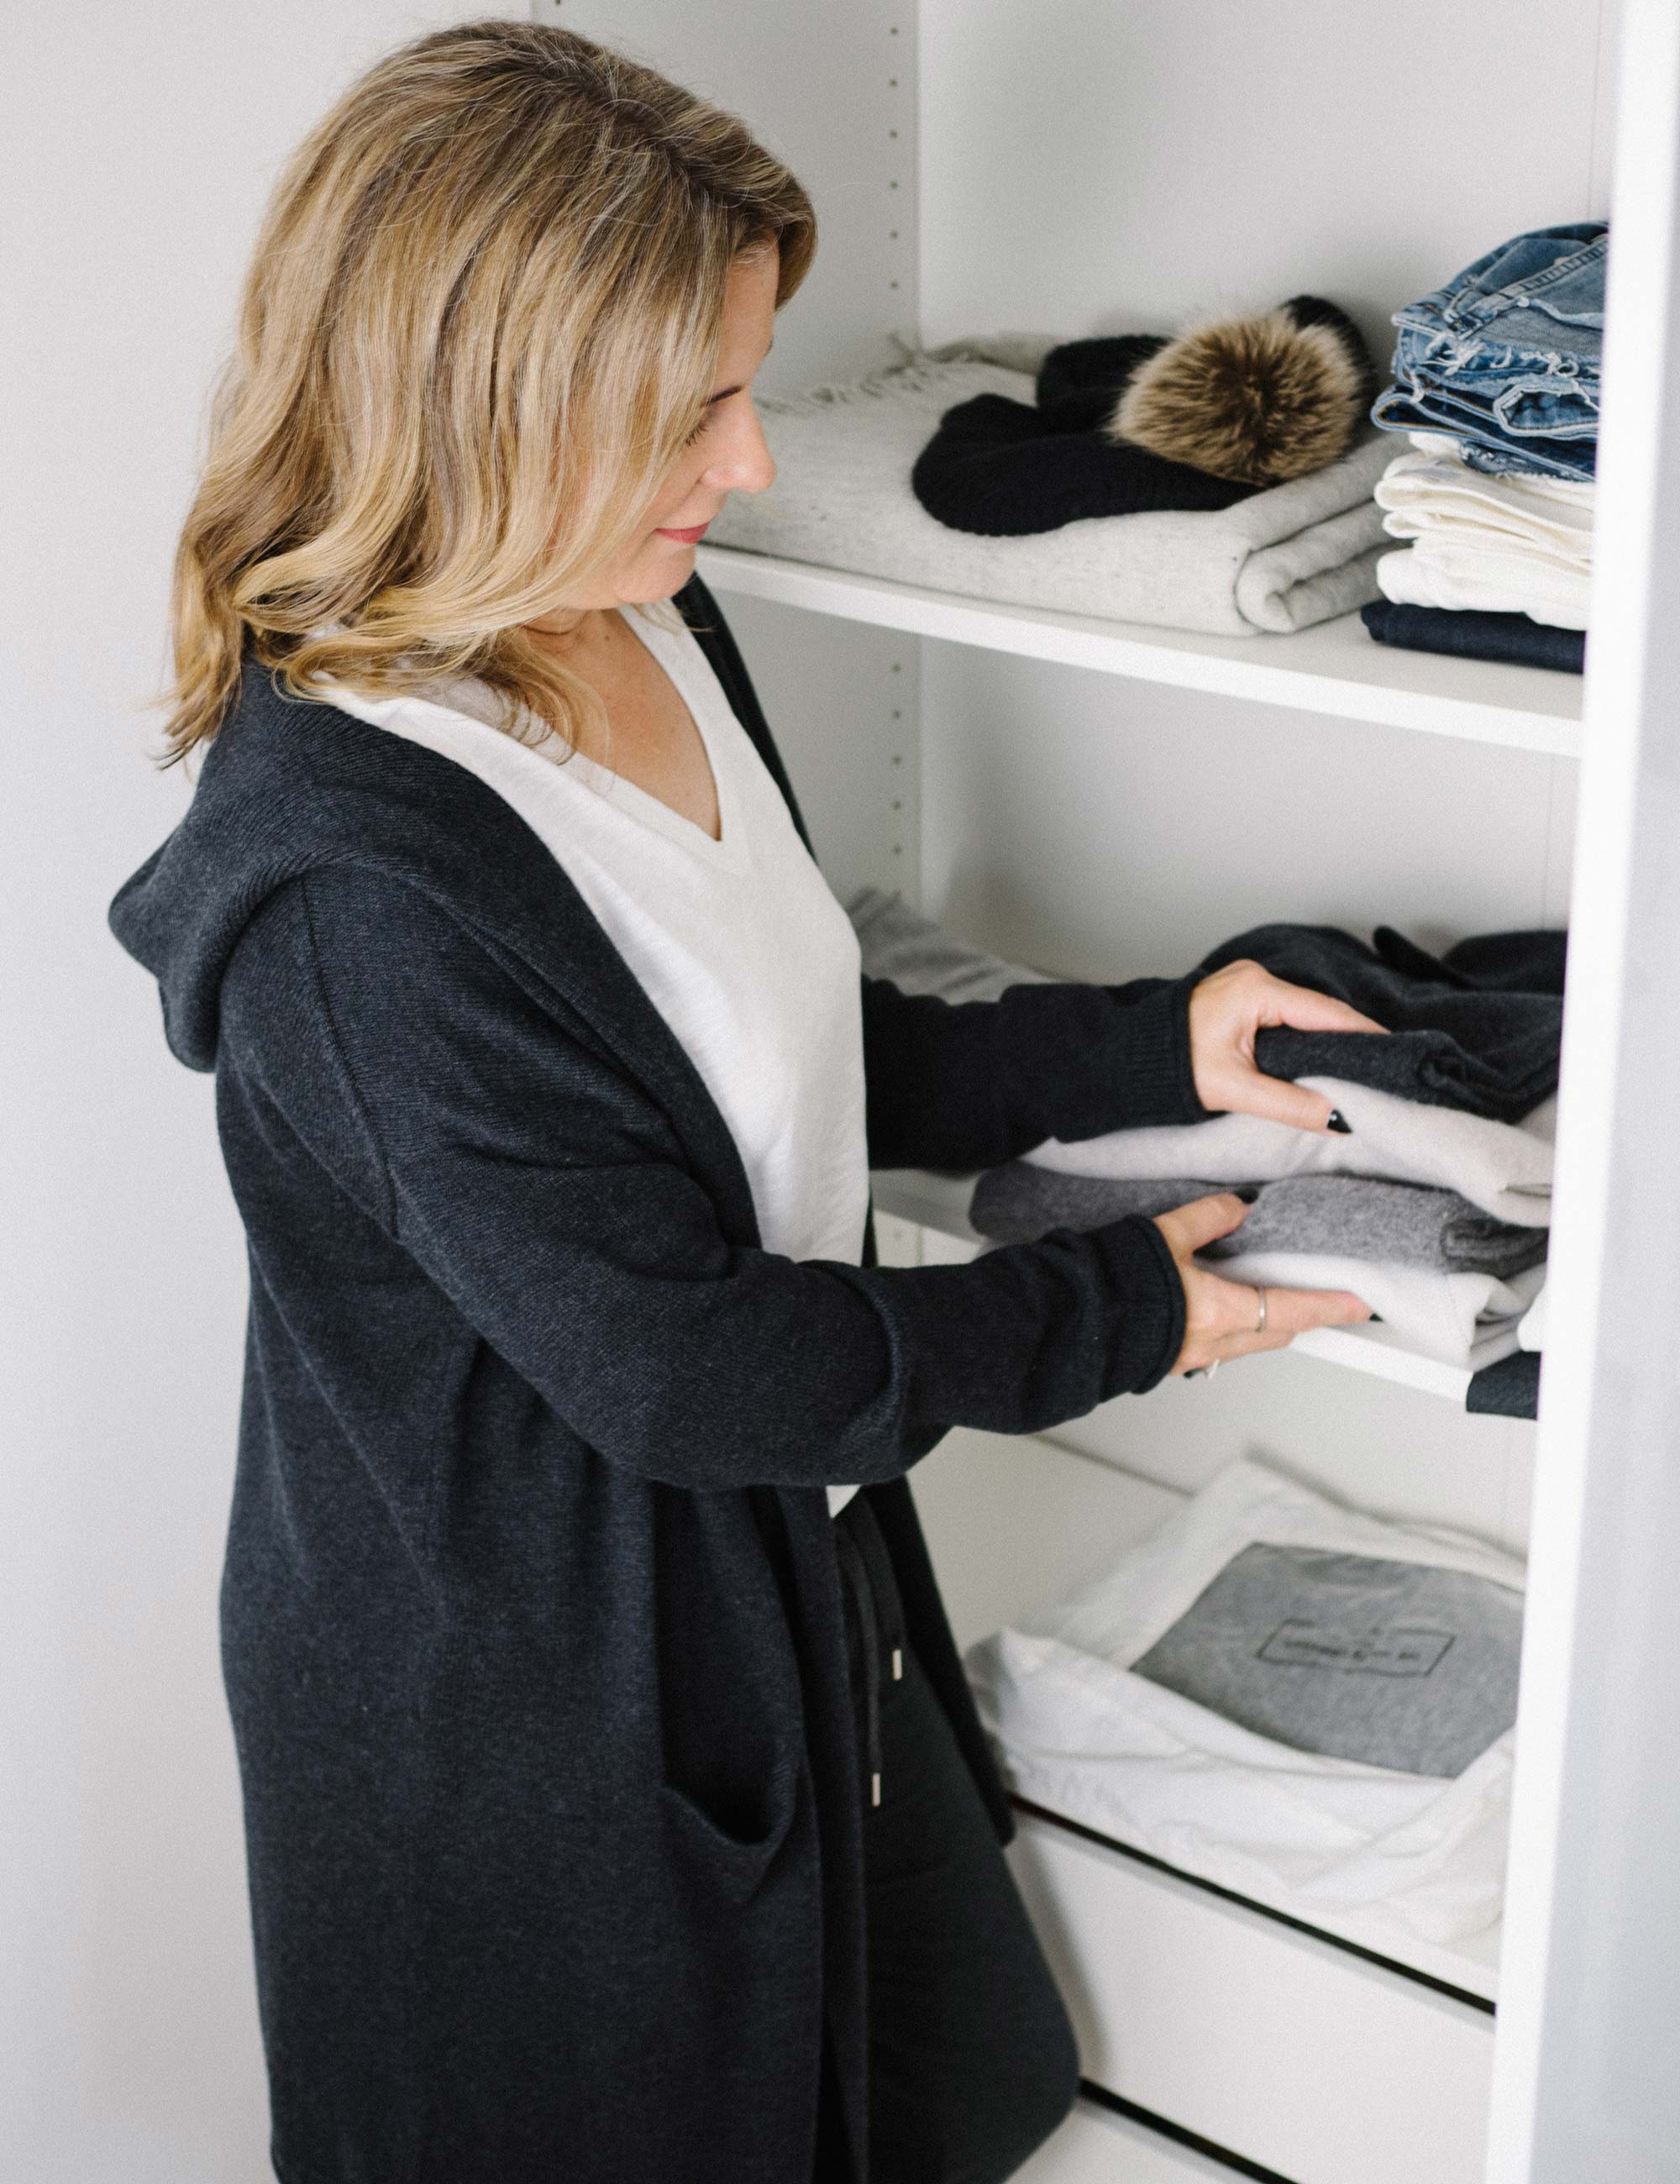 9 putting-away-sweaters-and-jeans.jpg